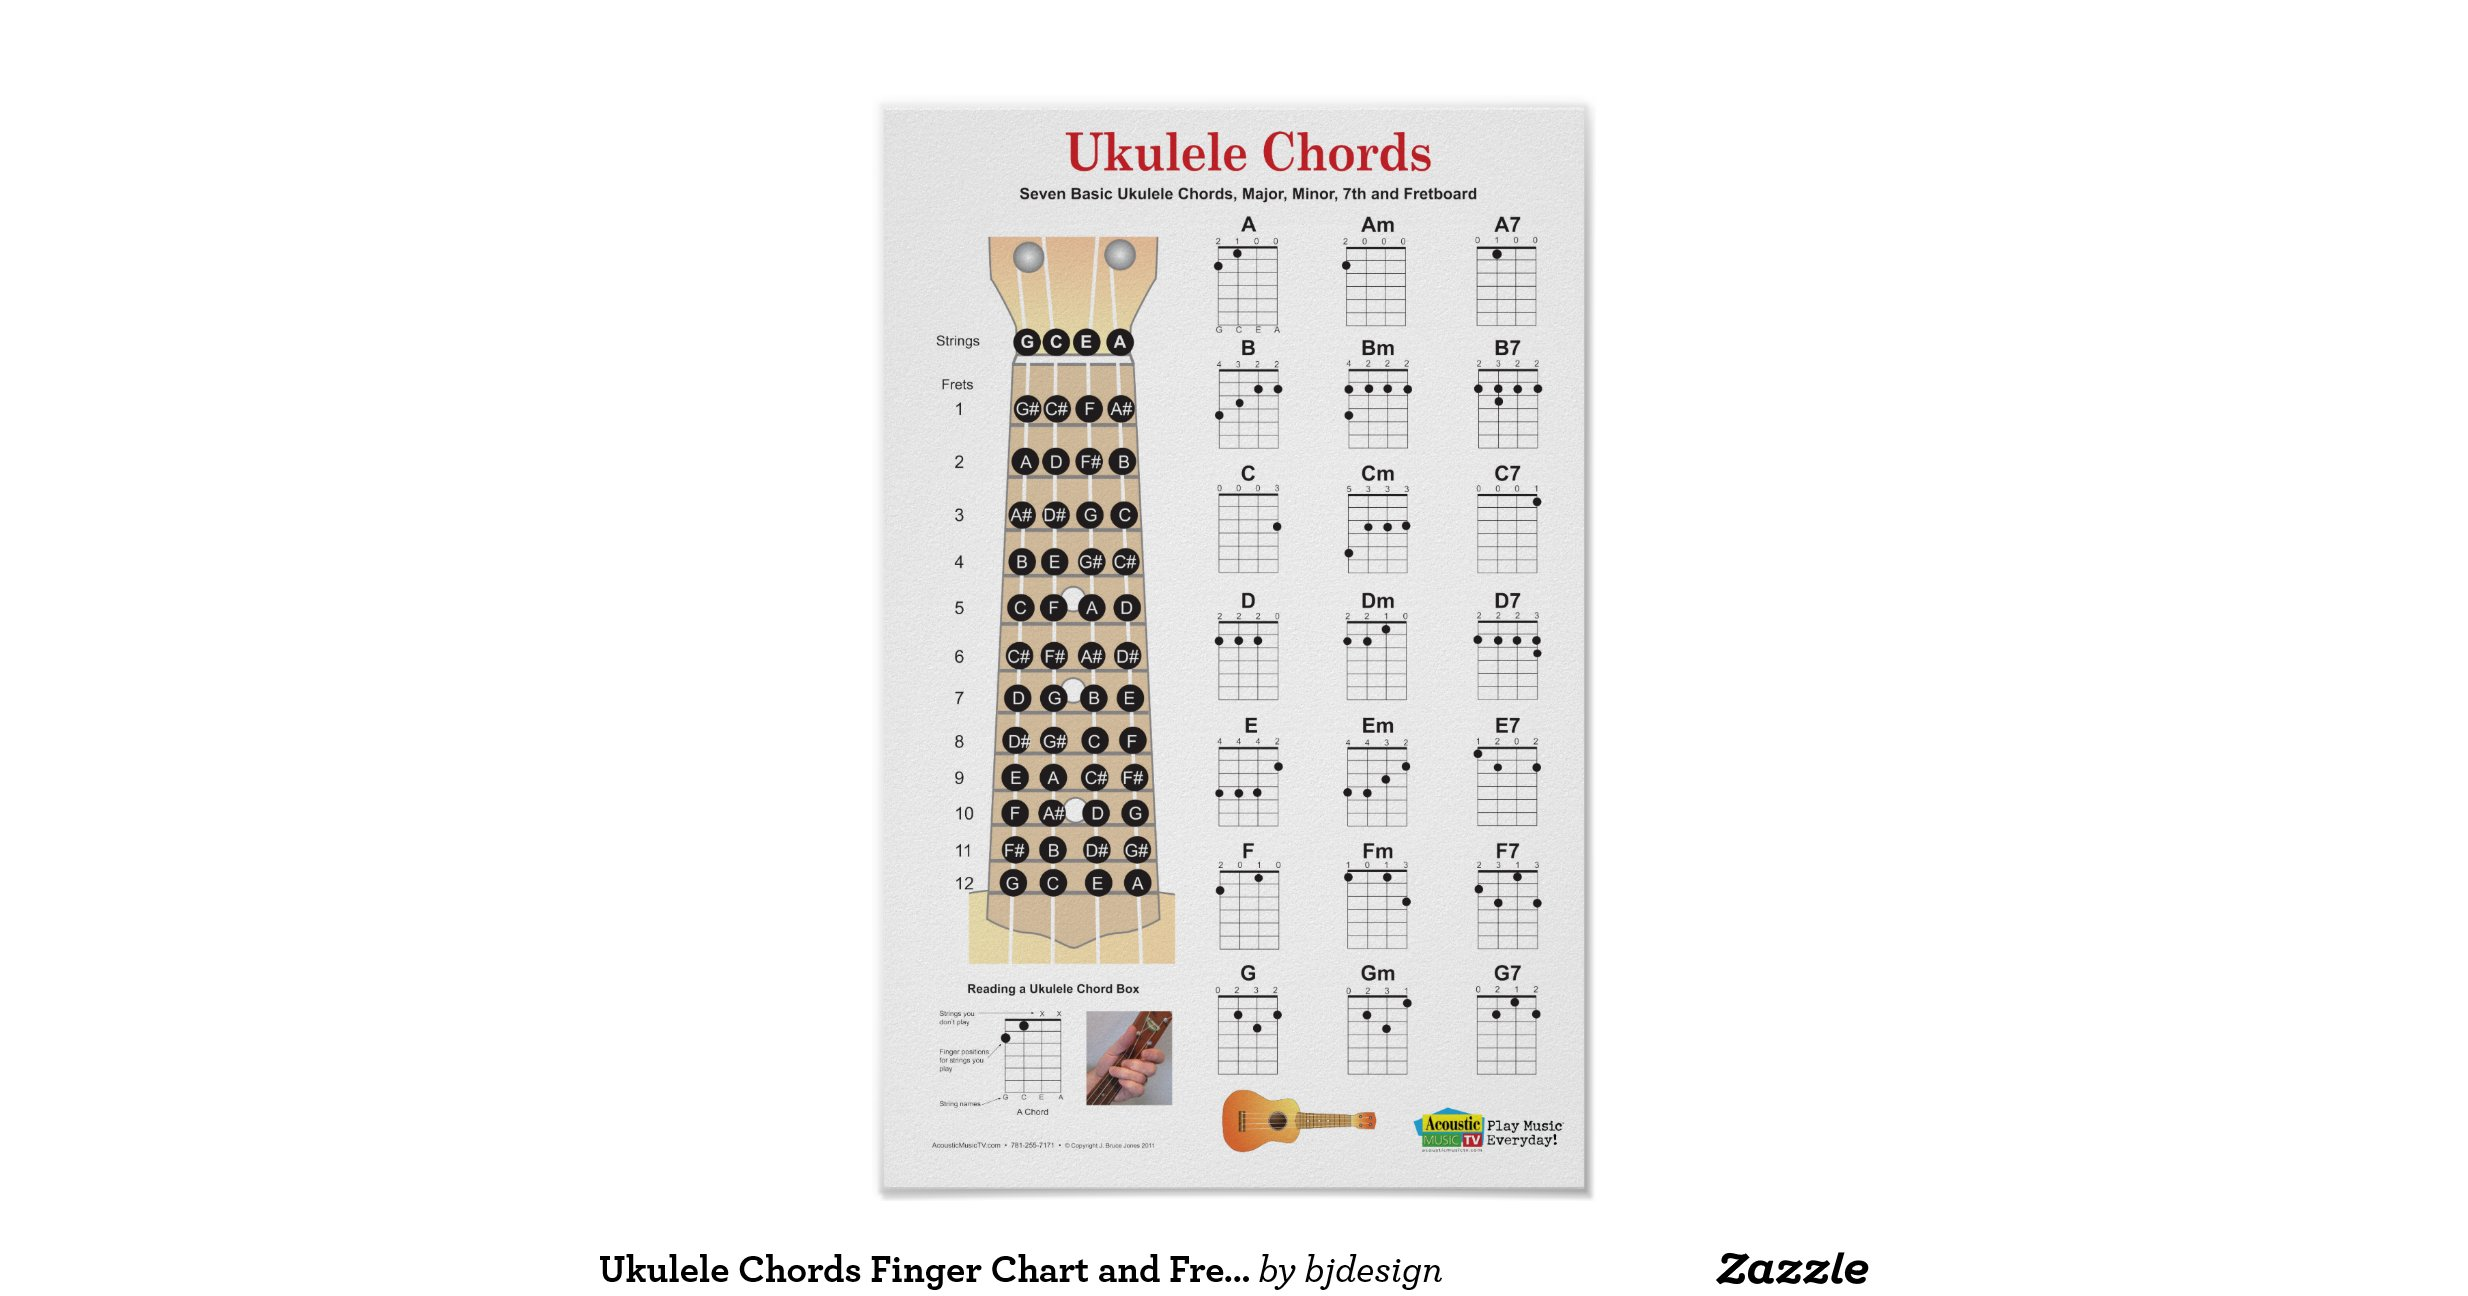 ukulele_chords_finger_chart_and_fretboard_poster-r82643bb848a44d9281b494a1e6e712e7_zqd_8byvr ...